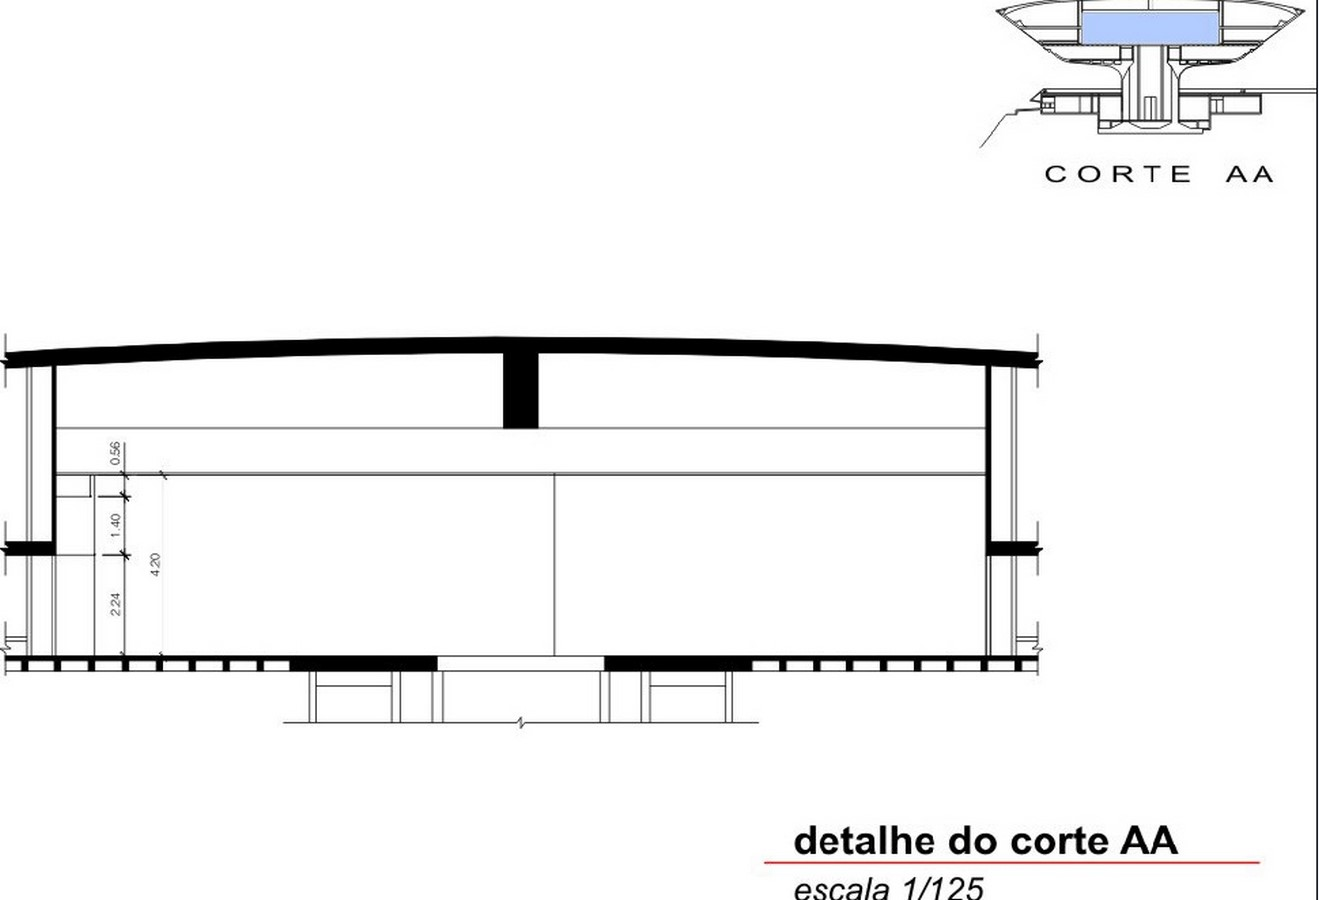 Niterói Contemporary Art Museum by Oscar Niemeyer: Iconic Saucer-Shaped Structure Sheet11